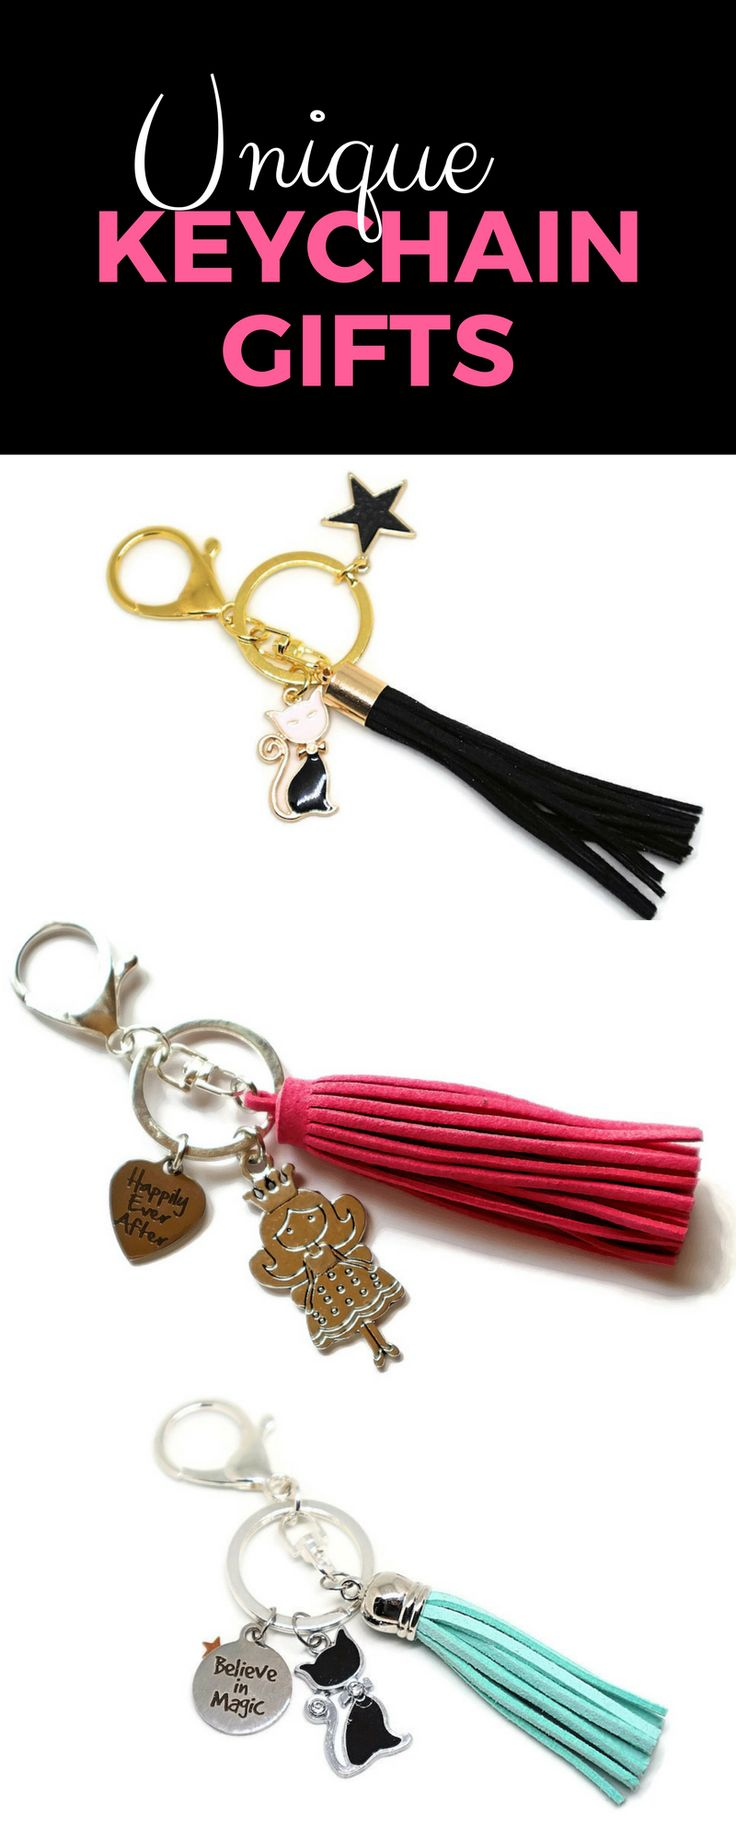 Unique keychain gifts for fairytale lovers, bookworms, and dreamers! LittleMollyGrue keychains are playful, magical, and come in various colors! They make great gifts for womens - girlfriend, mother, daughter, sister or best friend, they'll all love them! They also make perfect stocking fillers and housewarming gifts!